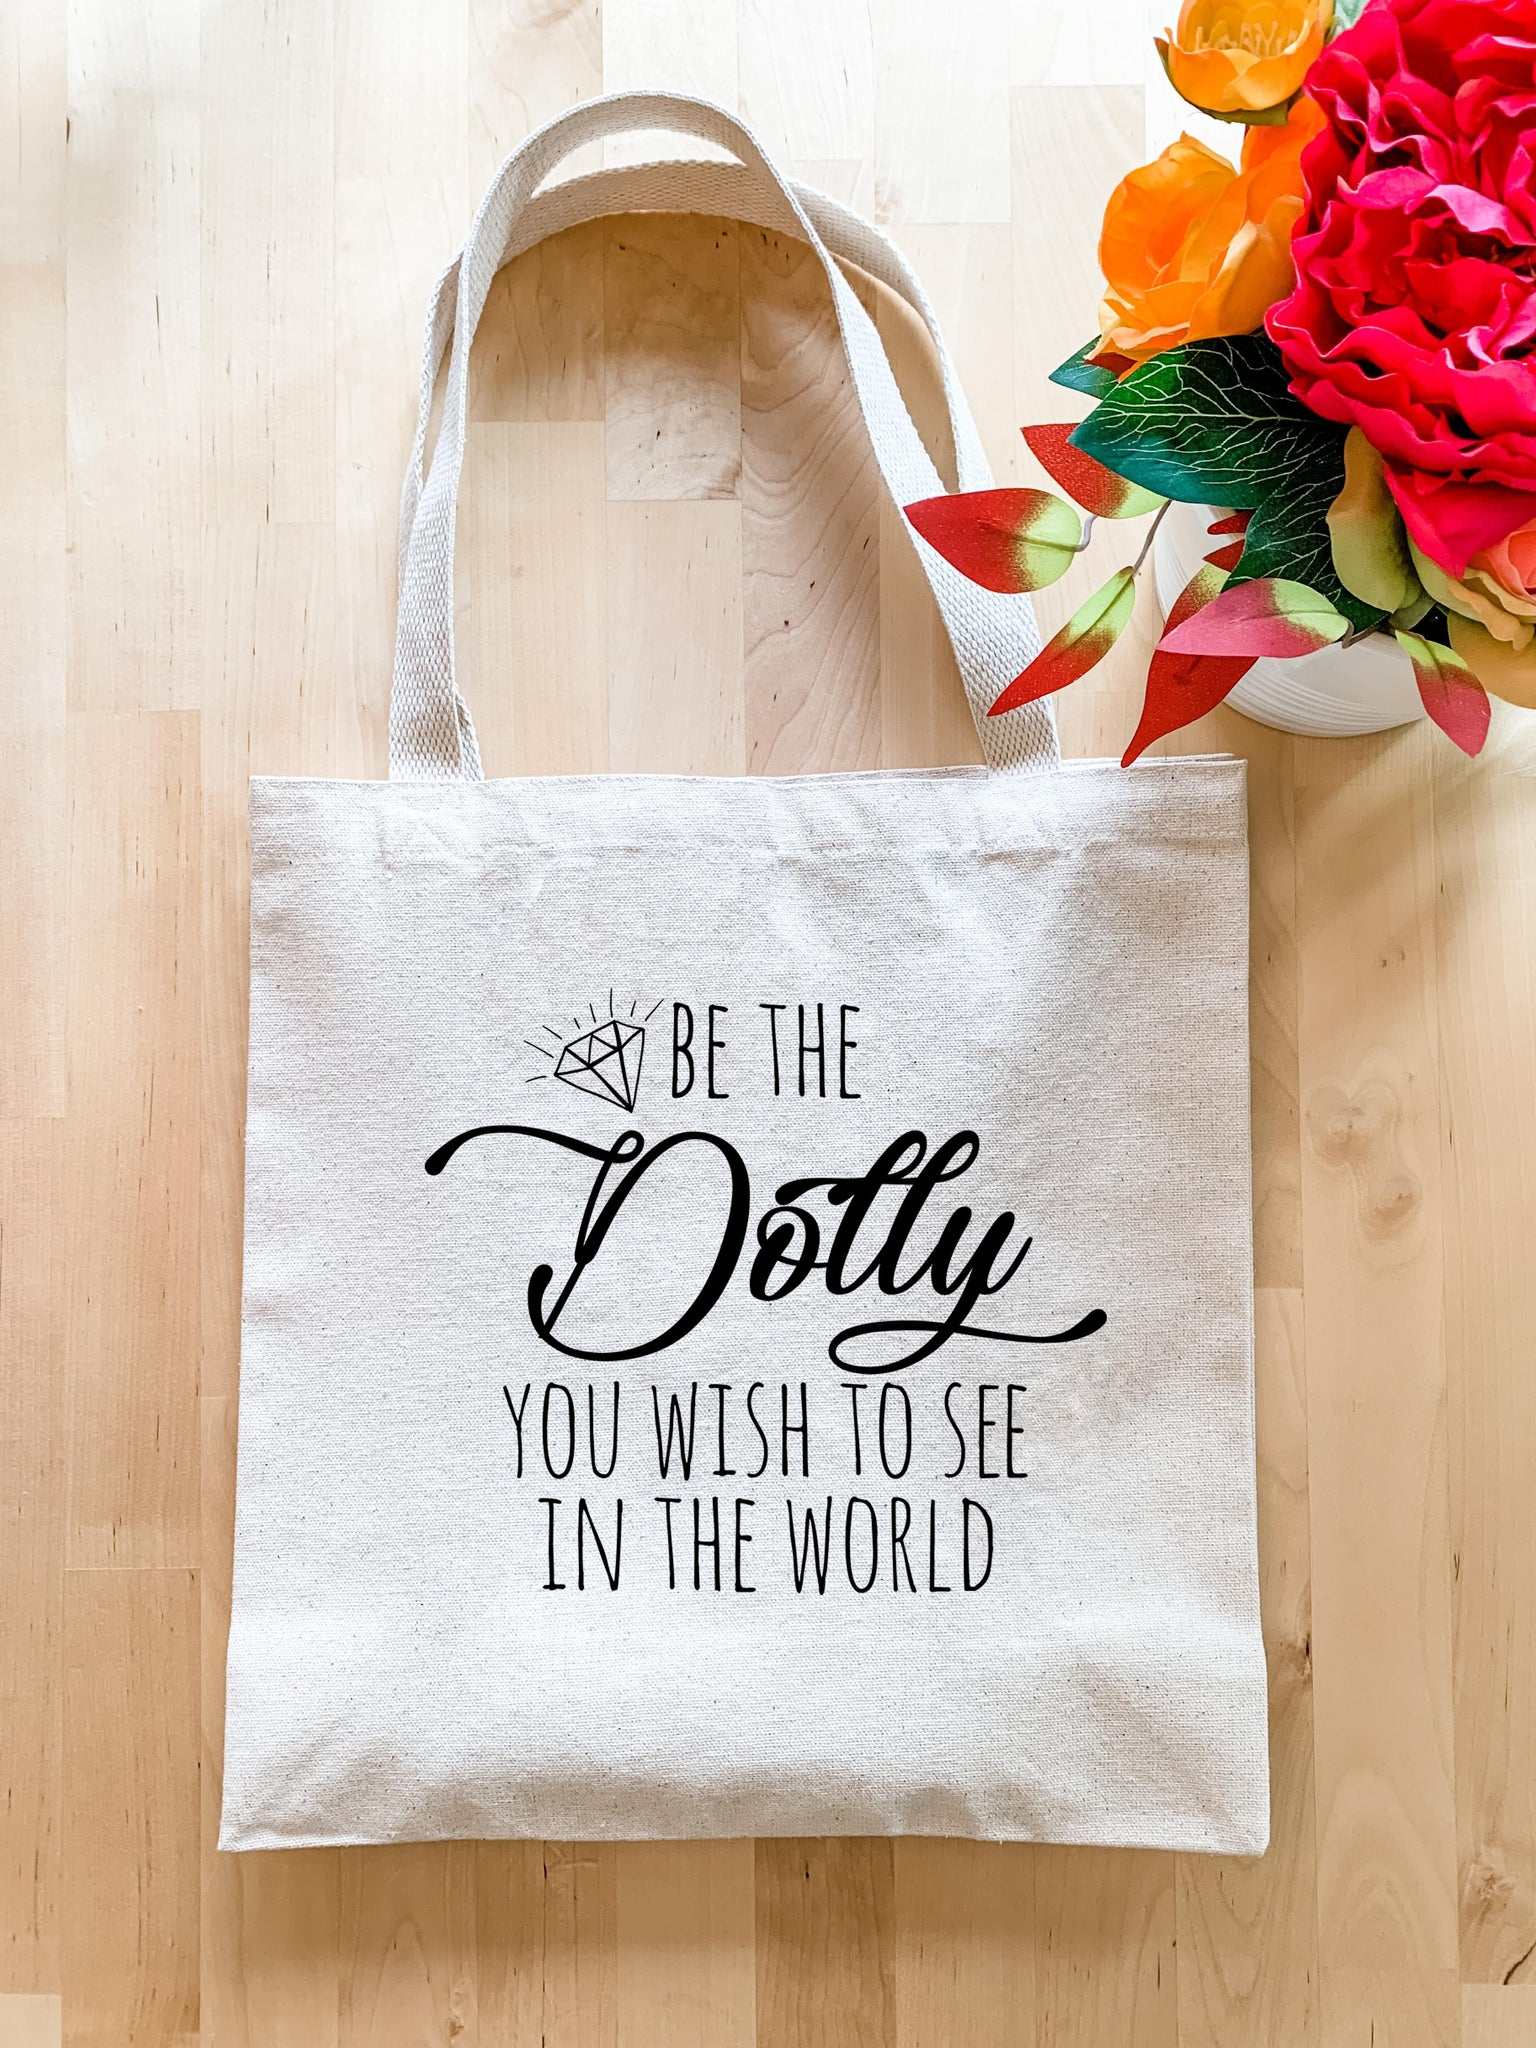 Be The Dolly You Wish To See In The World - Tote Bag - MoonlightMakers